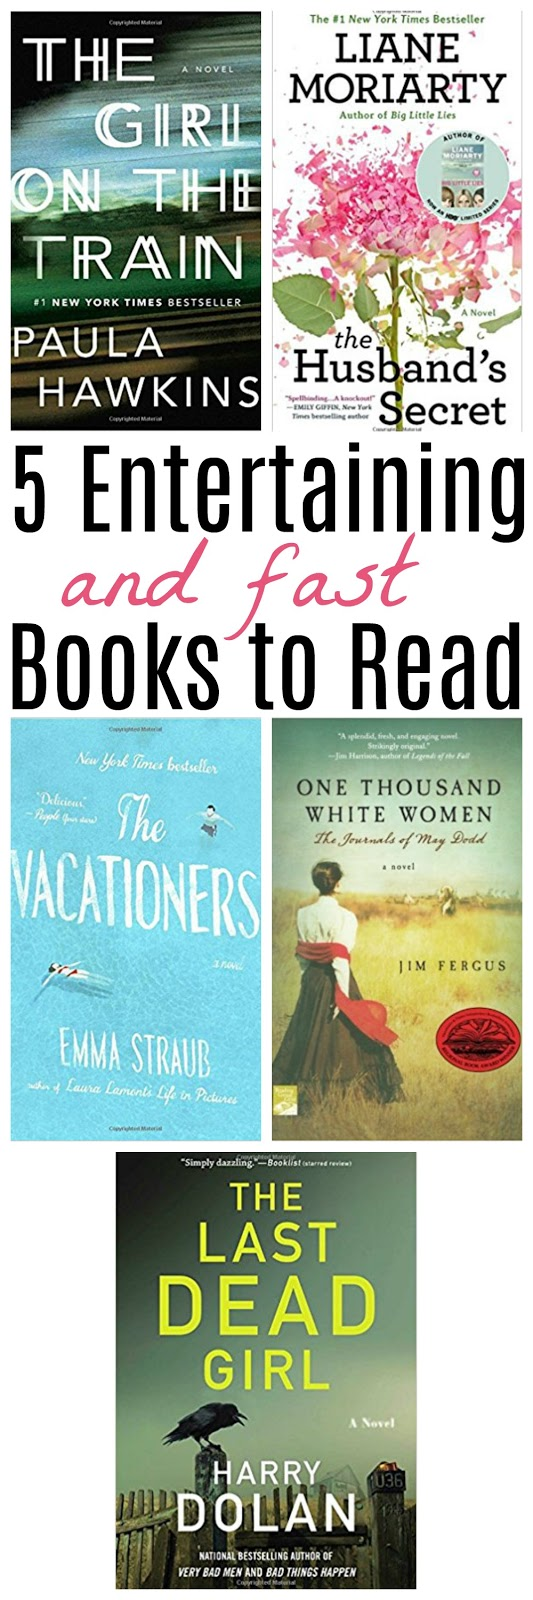 quick reads, entertaining books, easy books to read, adult fiction